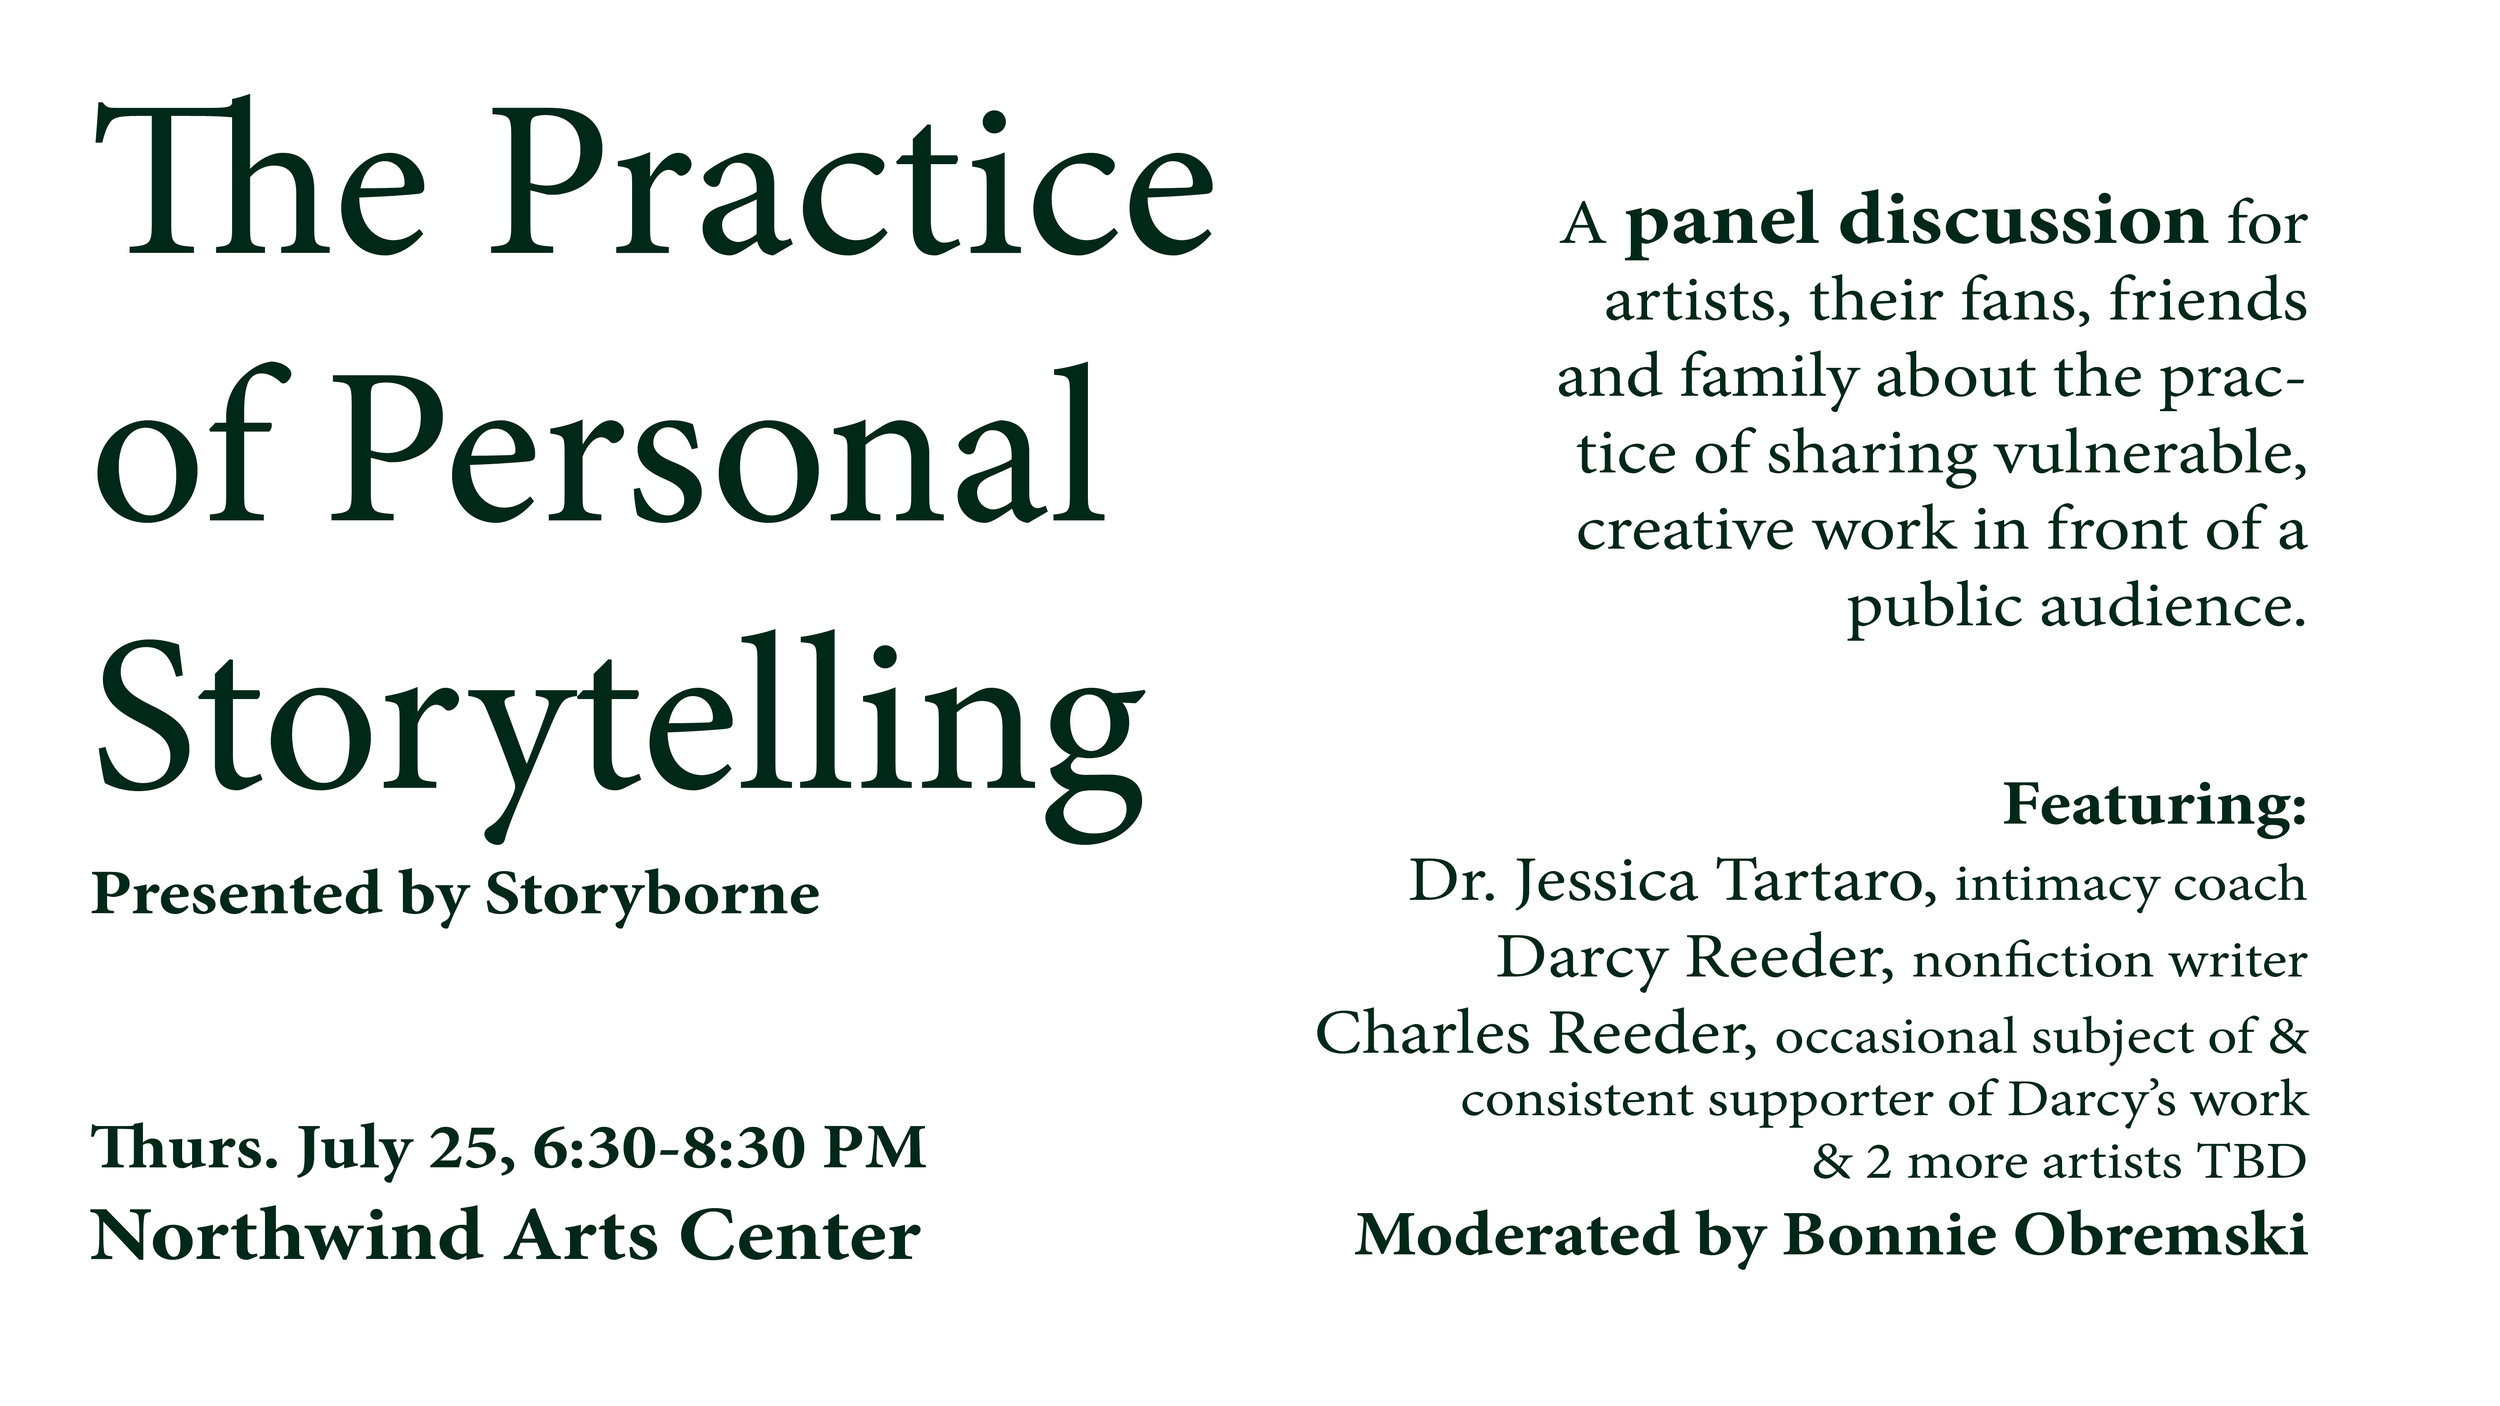 Panel-Discussion-Northwind-Arts-Center-Practice-Of-Vulnerable-Personal-Storytelling-Port-Townsend